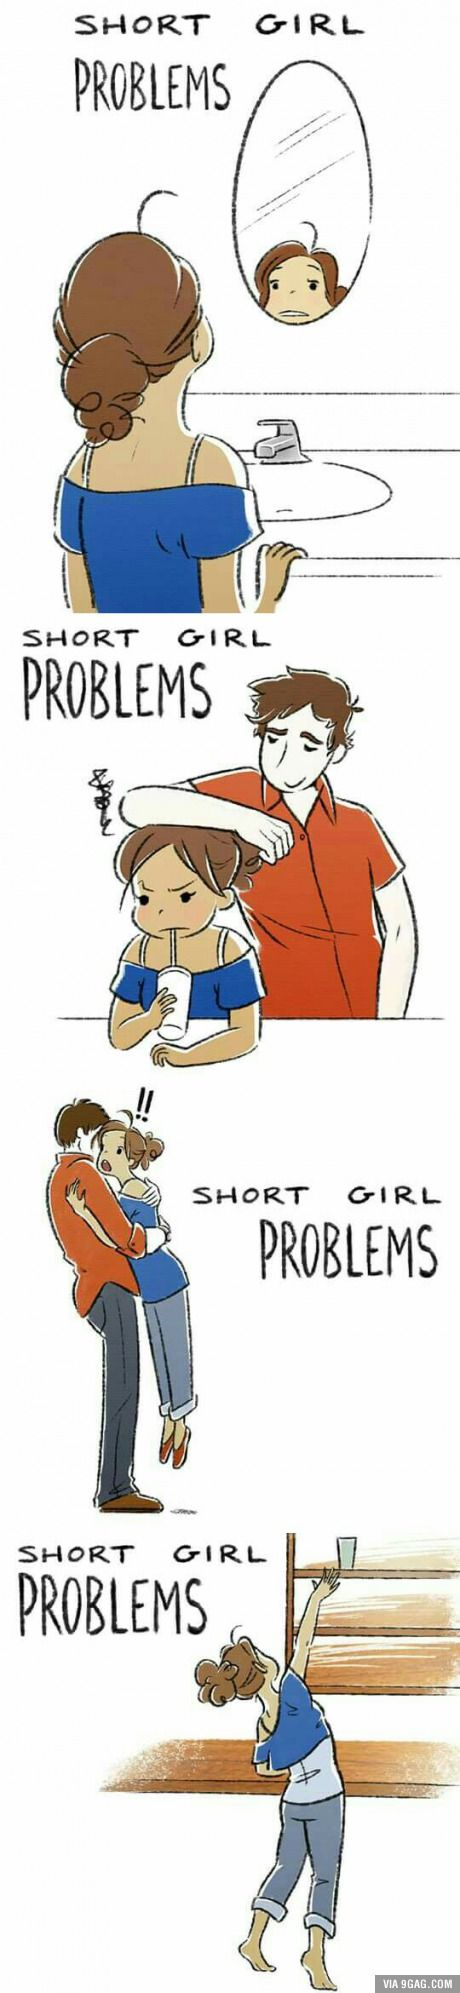 5 Best Sex Positions For Short Girls